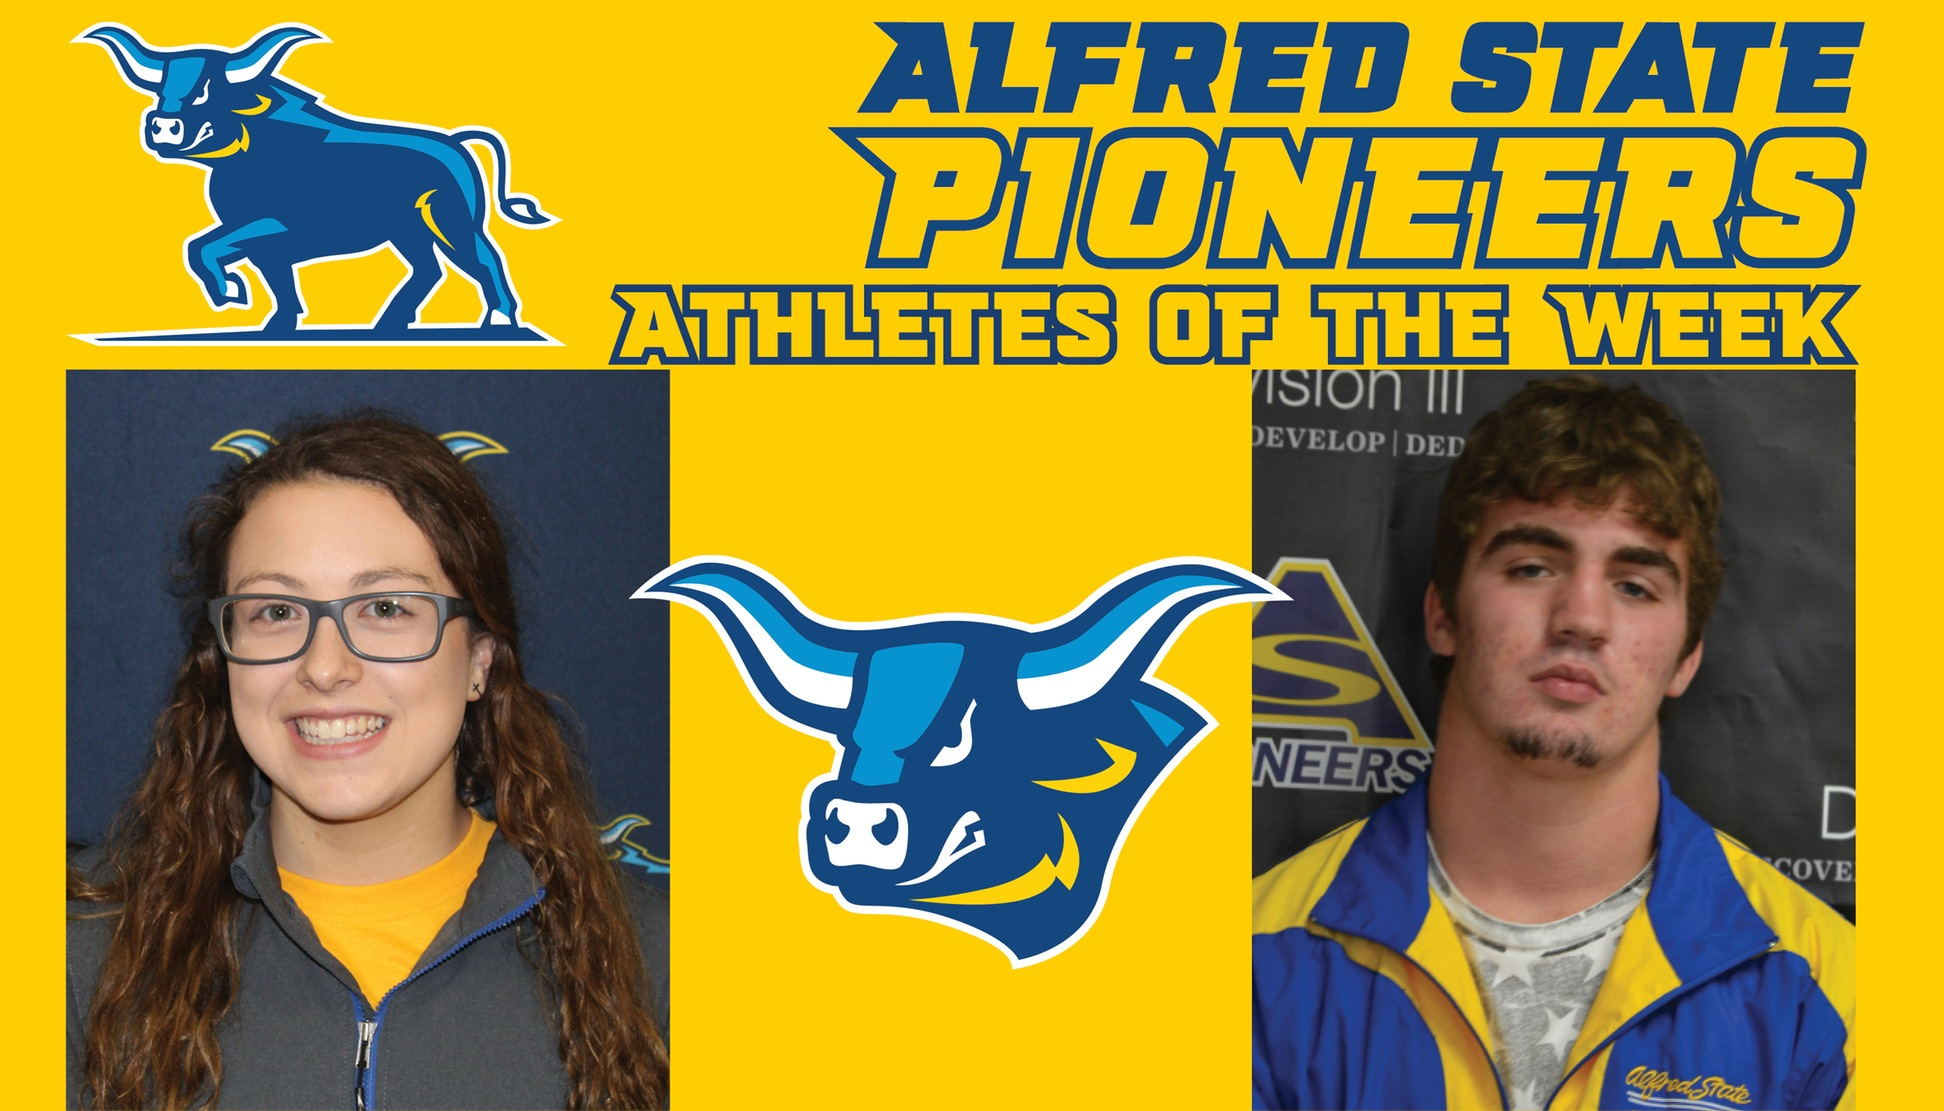 Kathryn Lewis and Tristan Almeter Named Athletes of the Week.